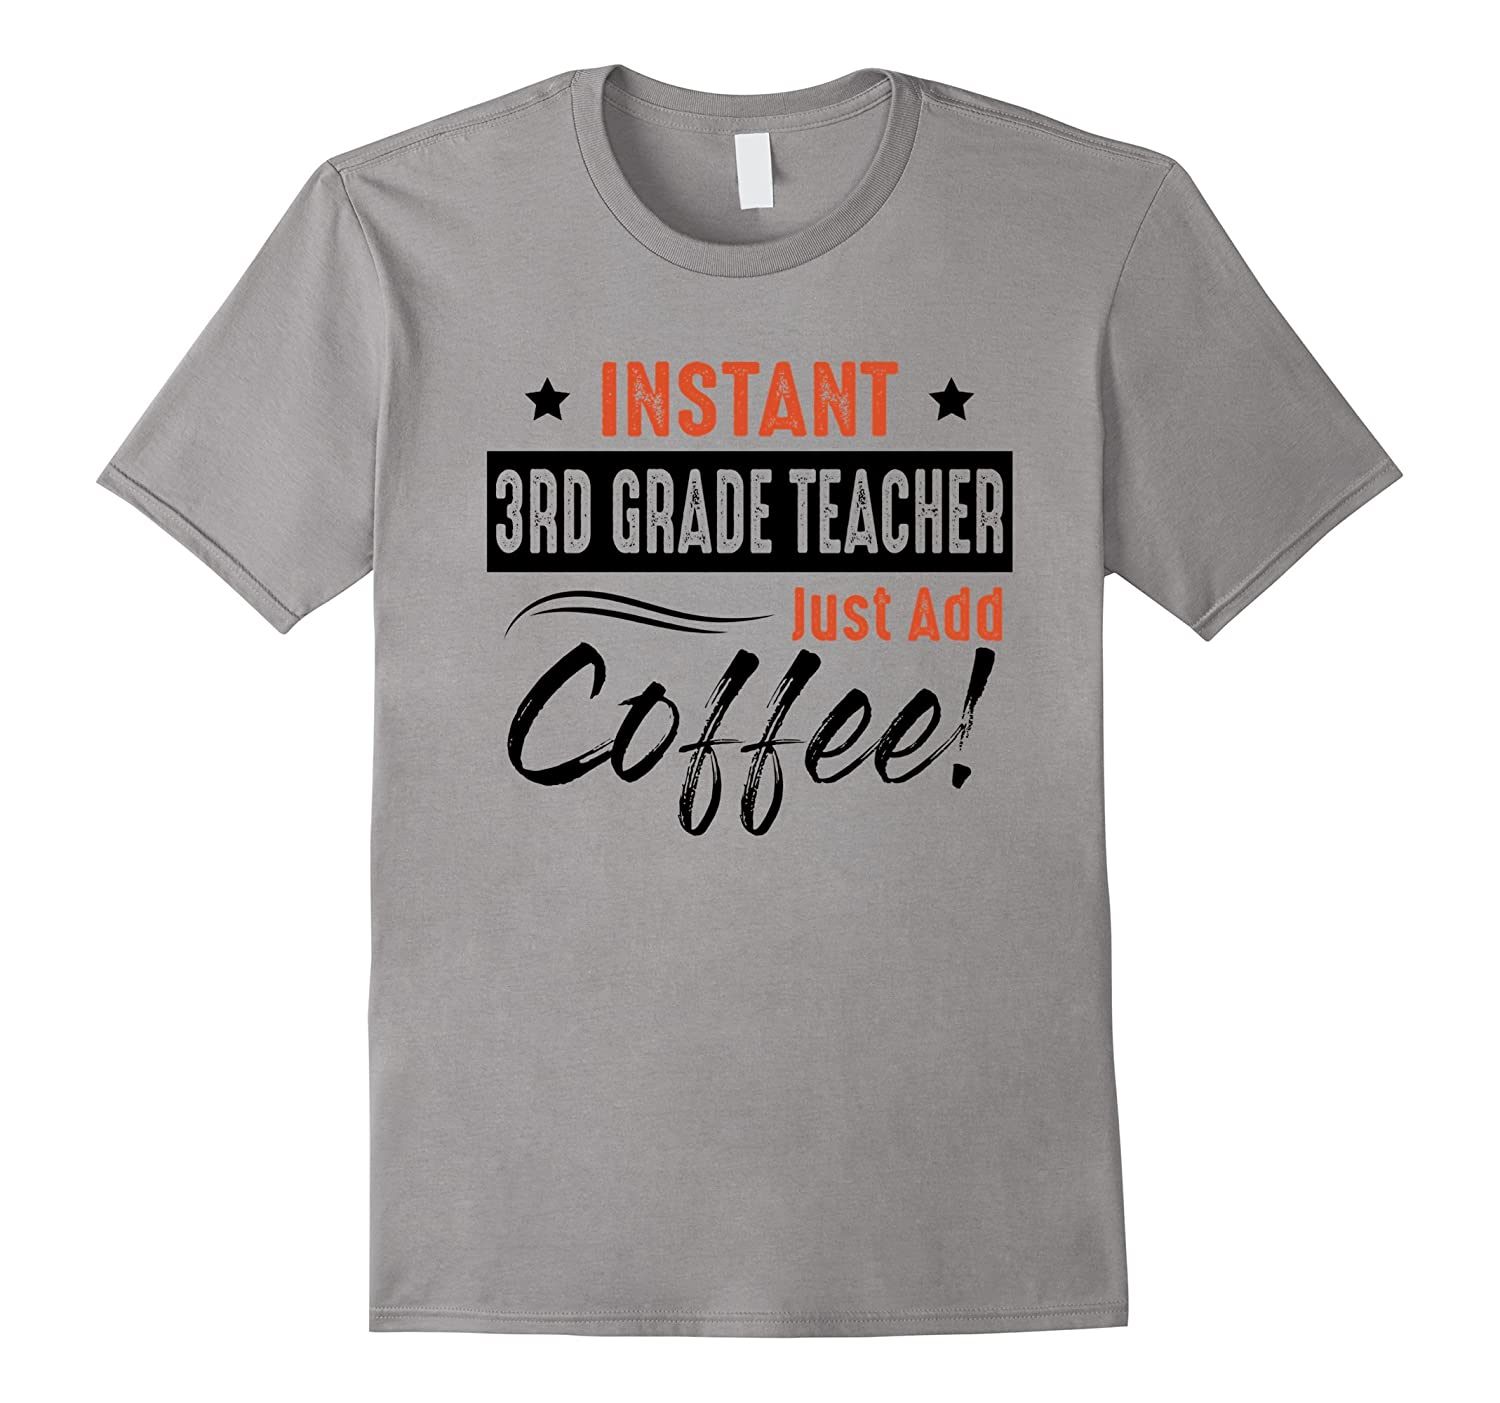 Instant 3rd Grade Teacher Just Add Coffee T Shirt-TJ